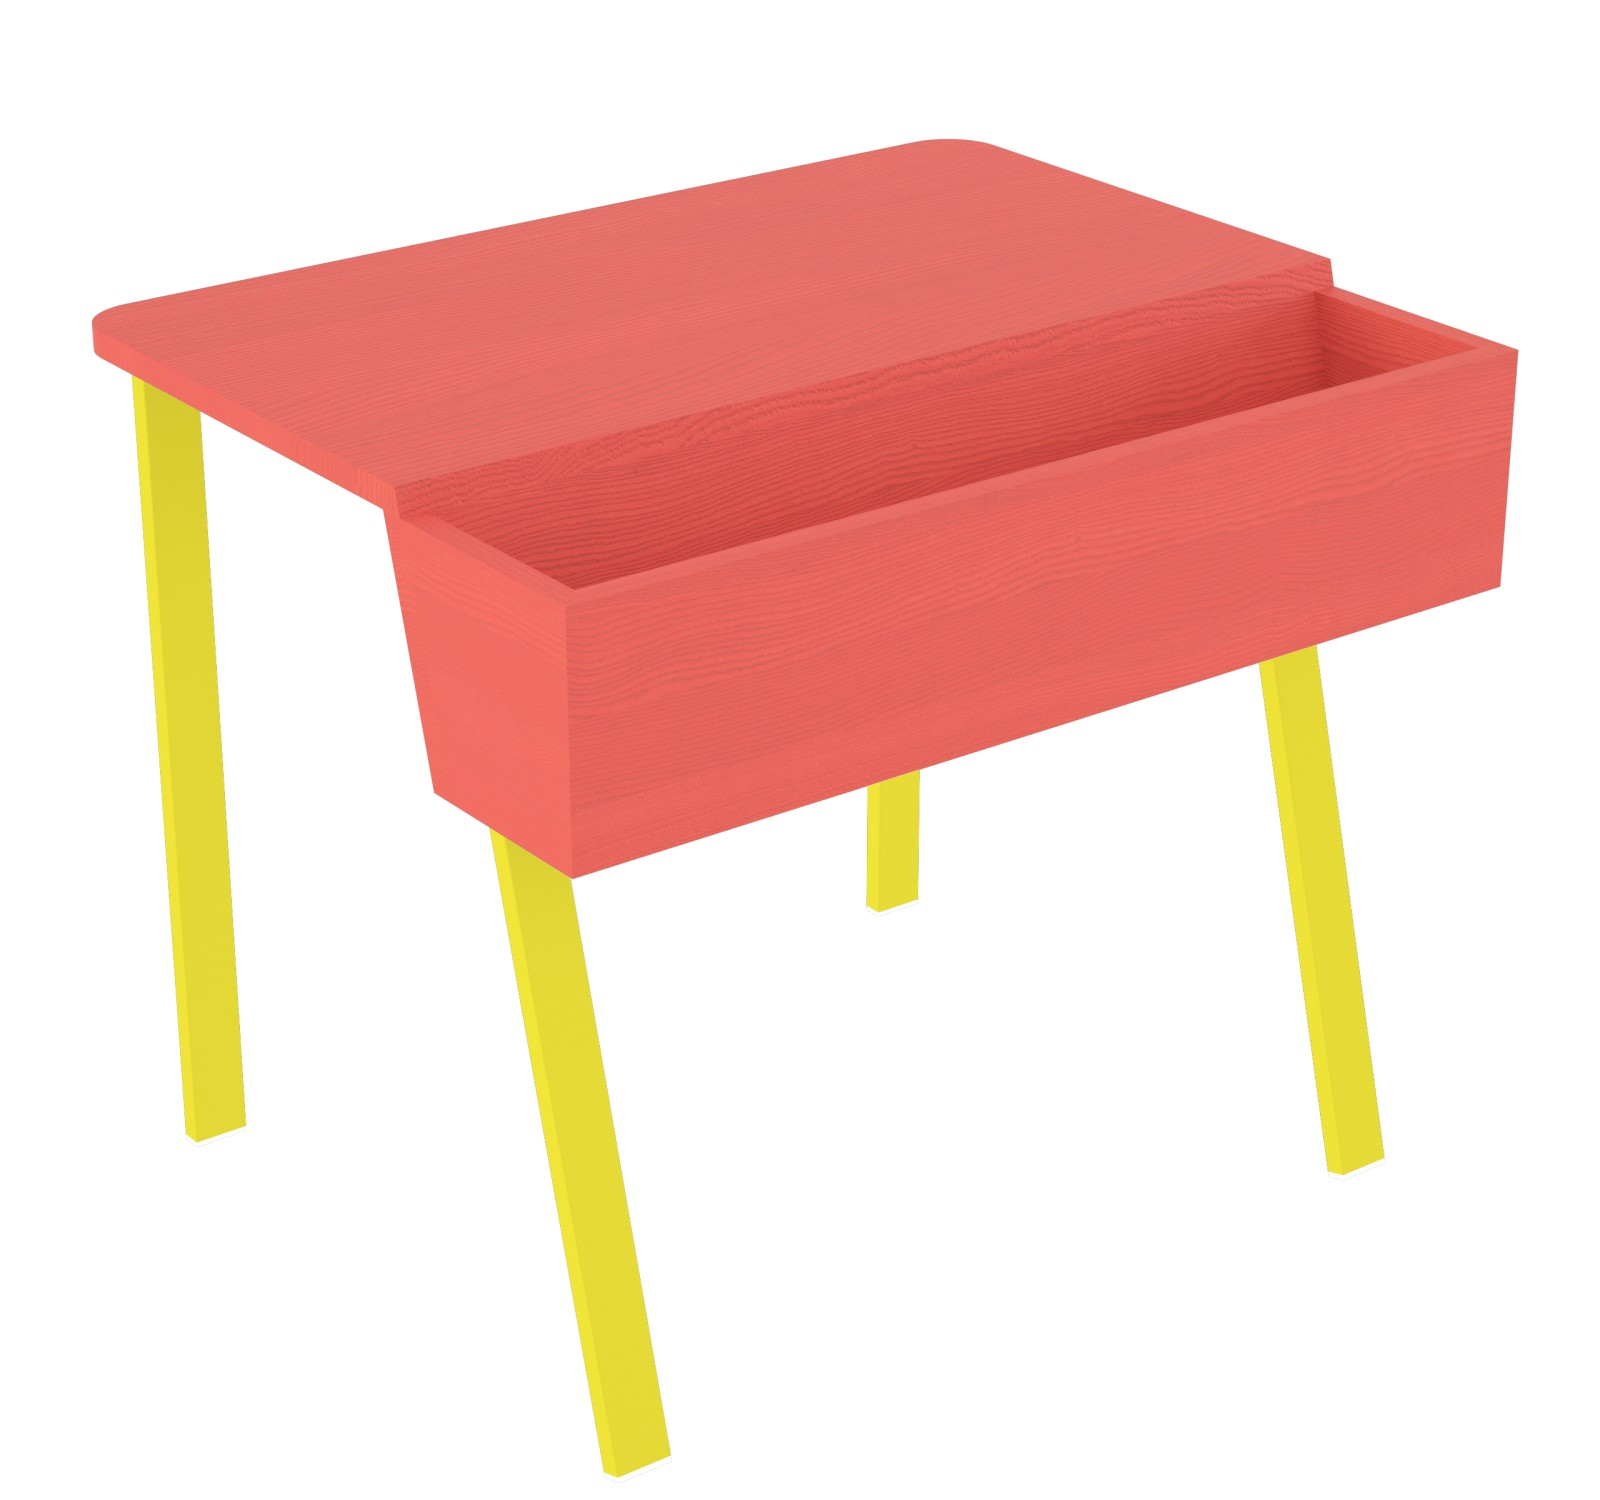 Wing Desk for One Wing Desk for One-red stained solid ash tabletop-yellow metal frame